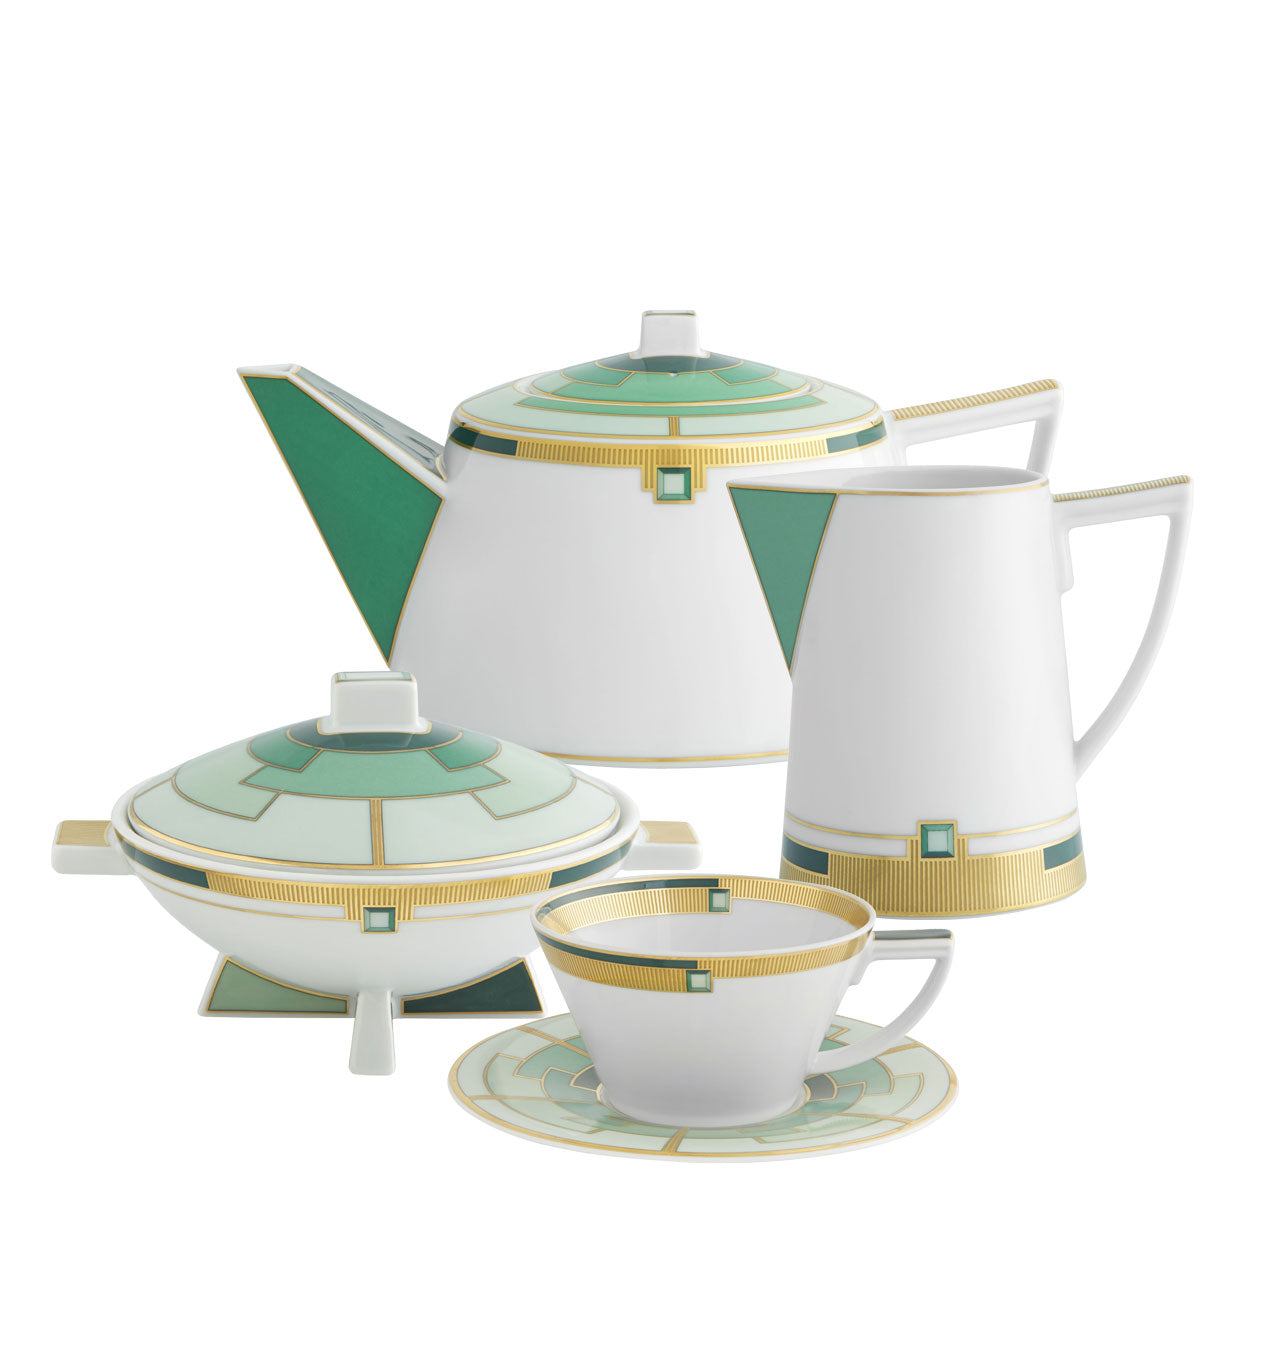 Emerald 15 Pieces Tea Set